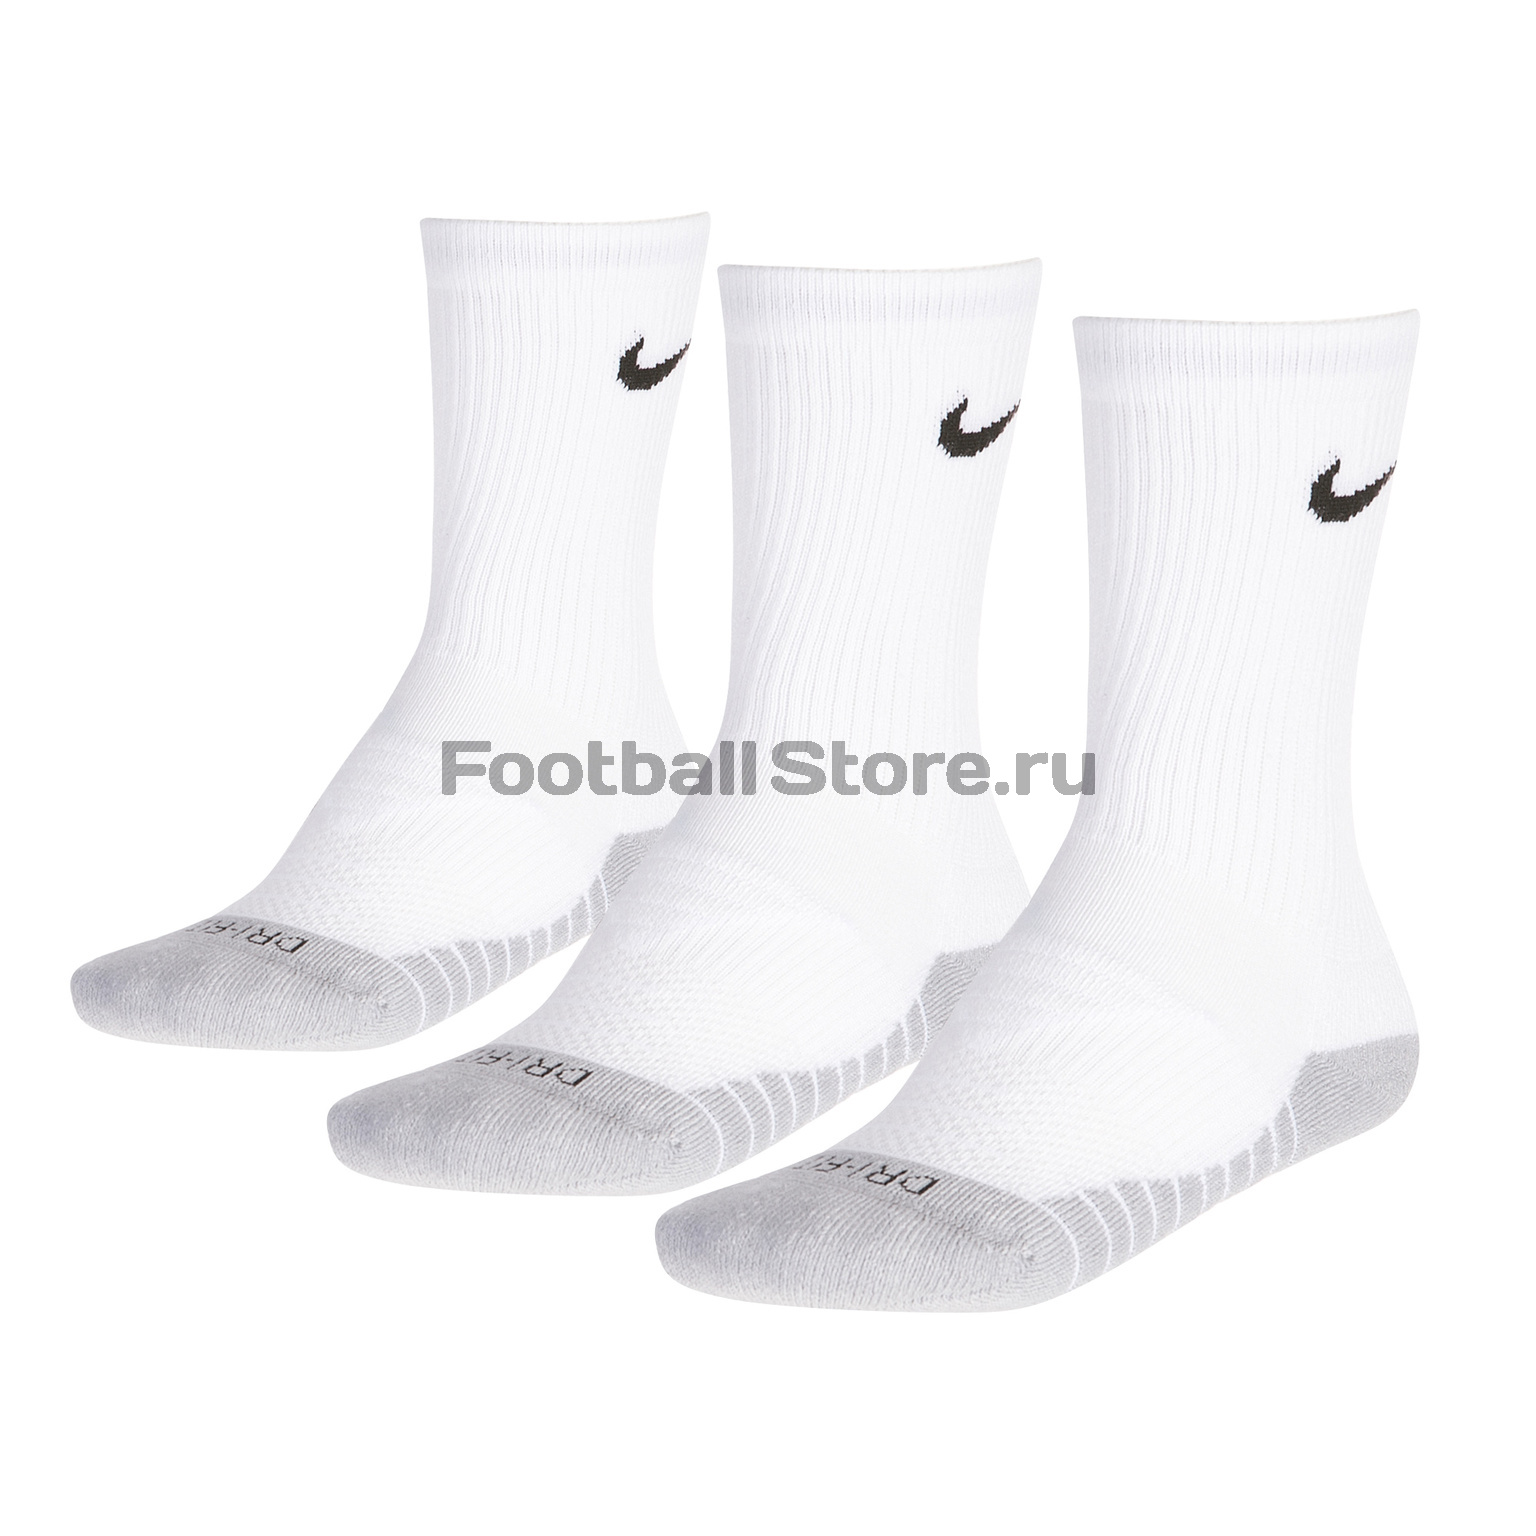 Комплект носков Nike 3PPK Dri-Fit Cushion Crew SX5547-100 комплект носков nike 3ppk value cotton crew smlx sx4508 101